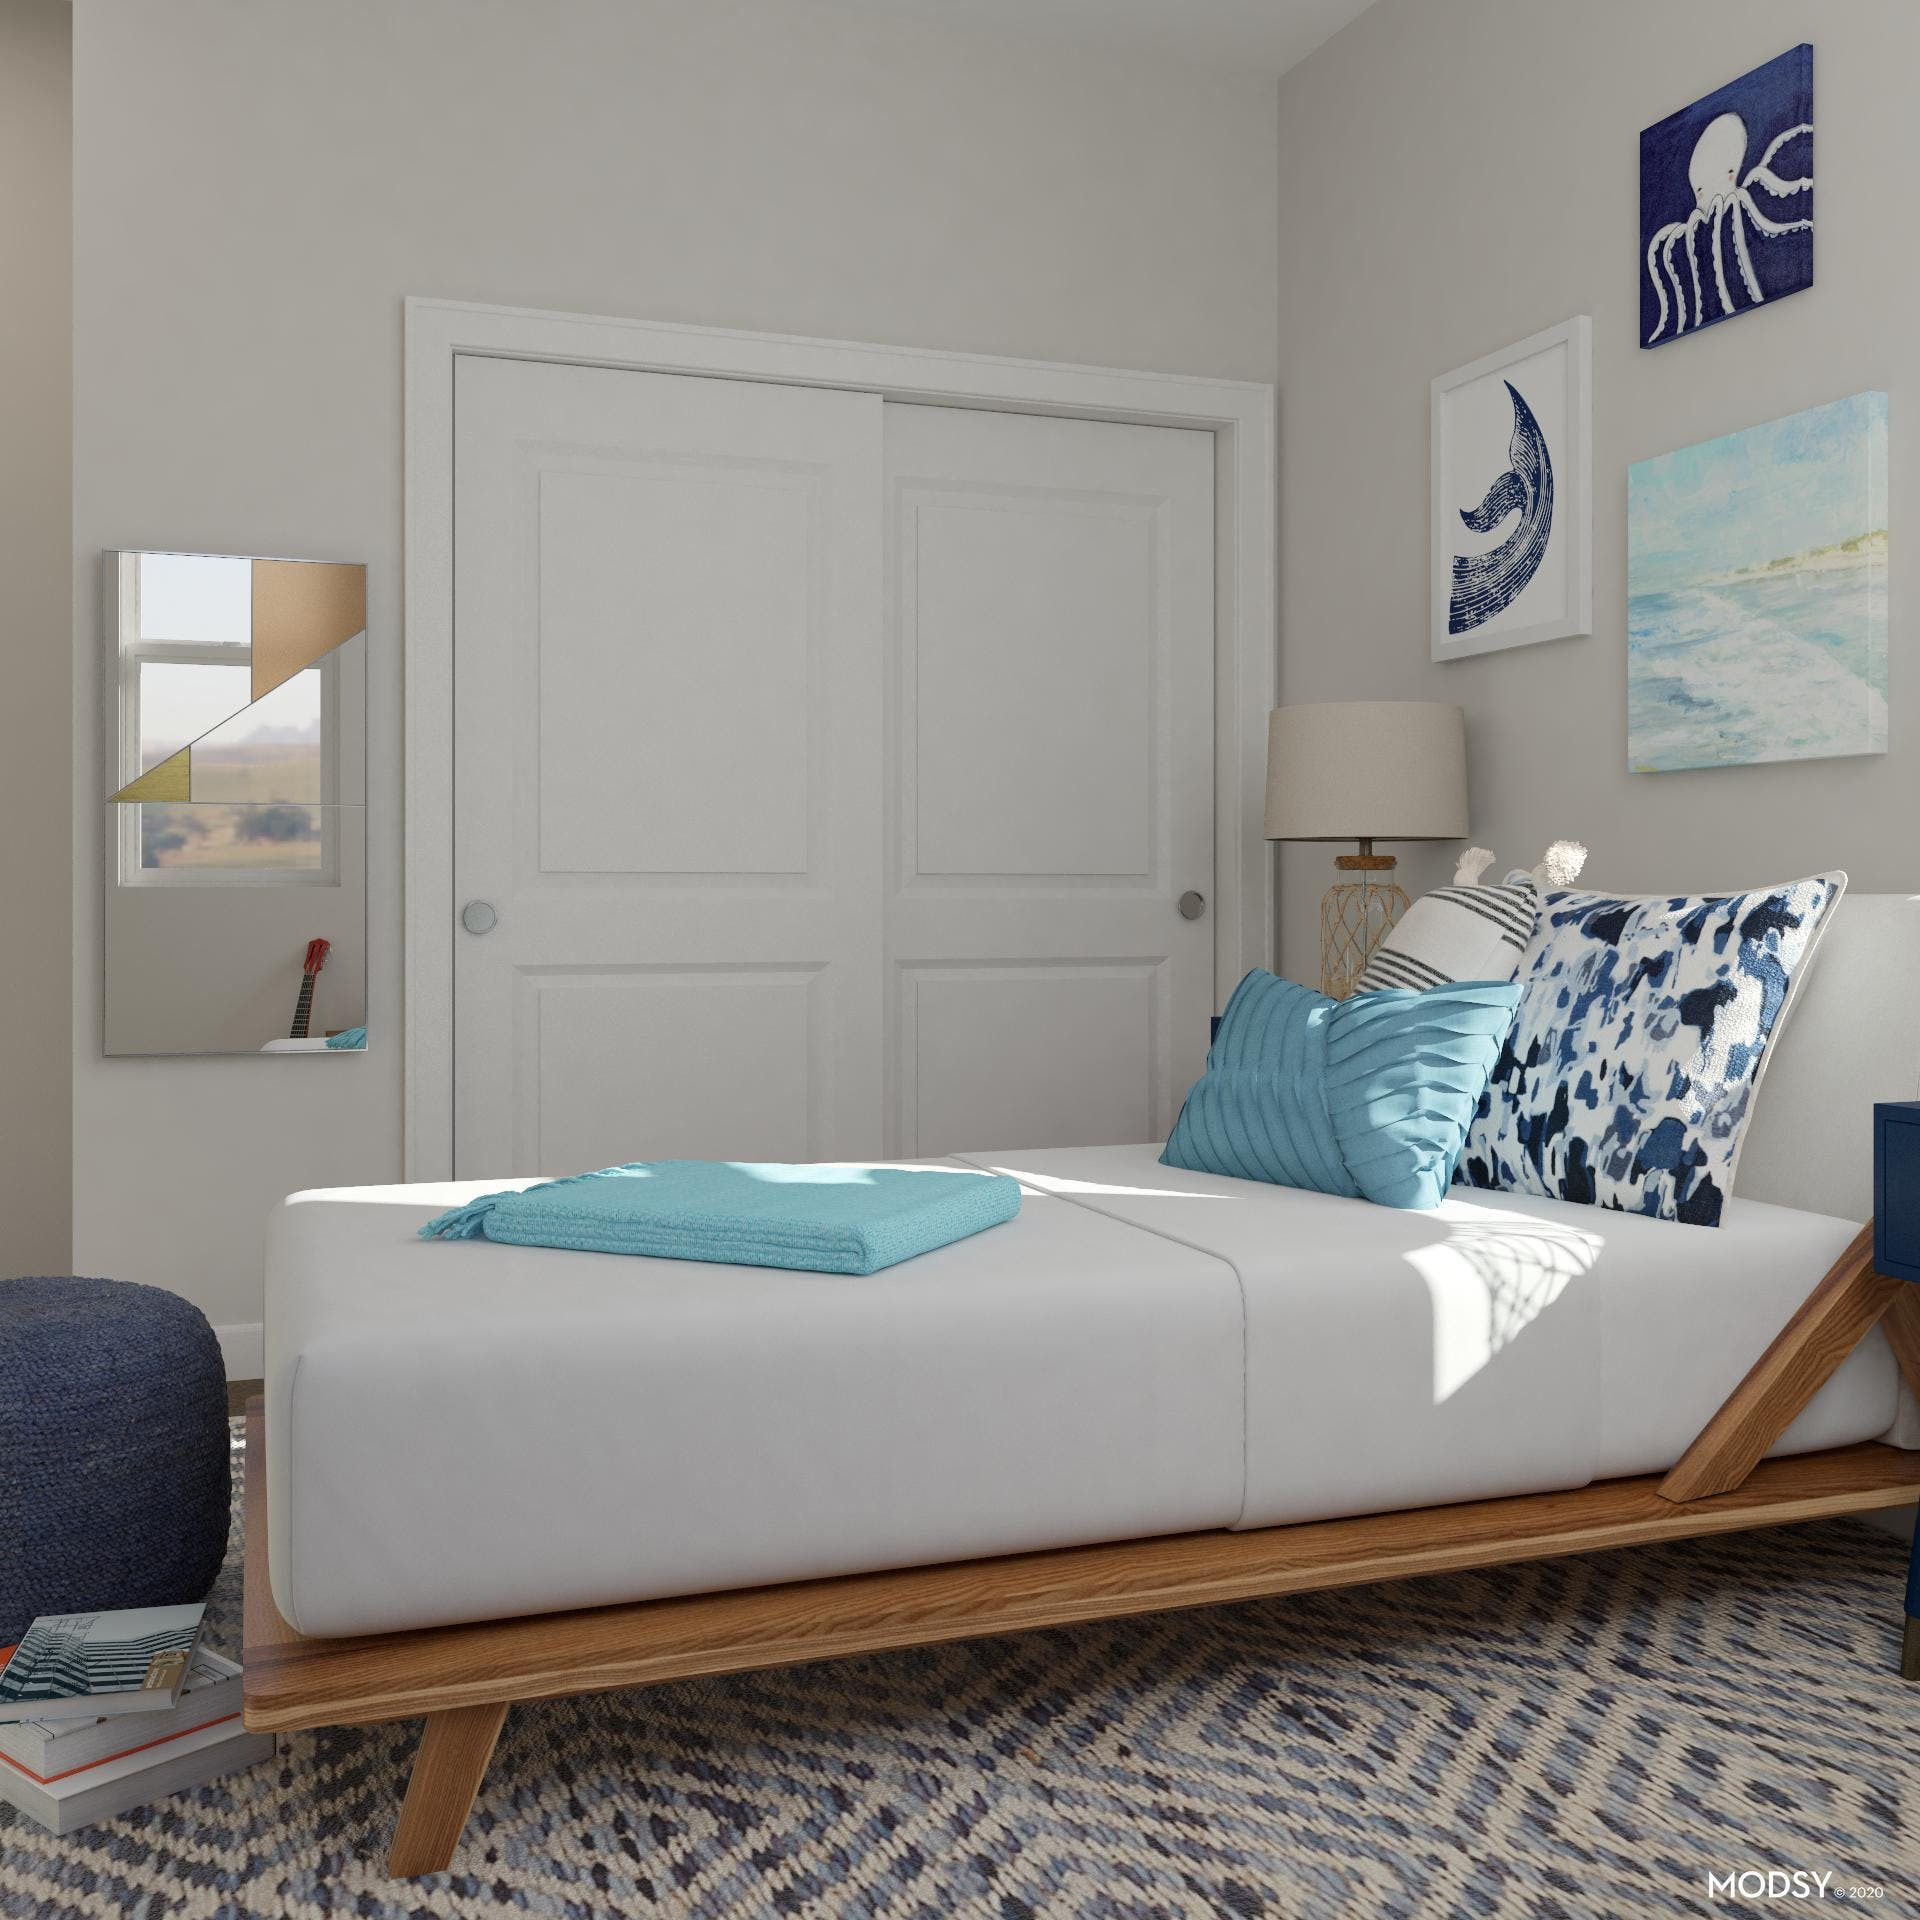 Kids' Room with Relaxing Coastal Blue